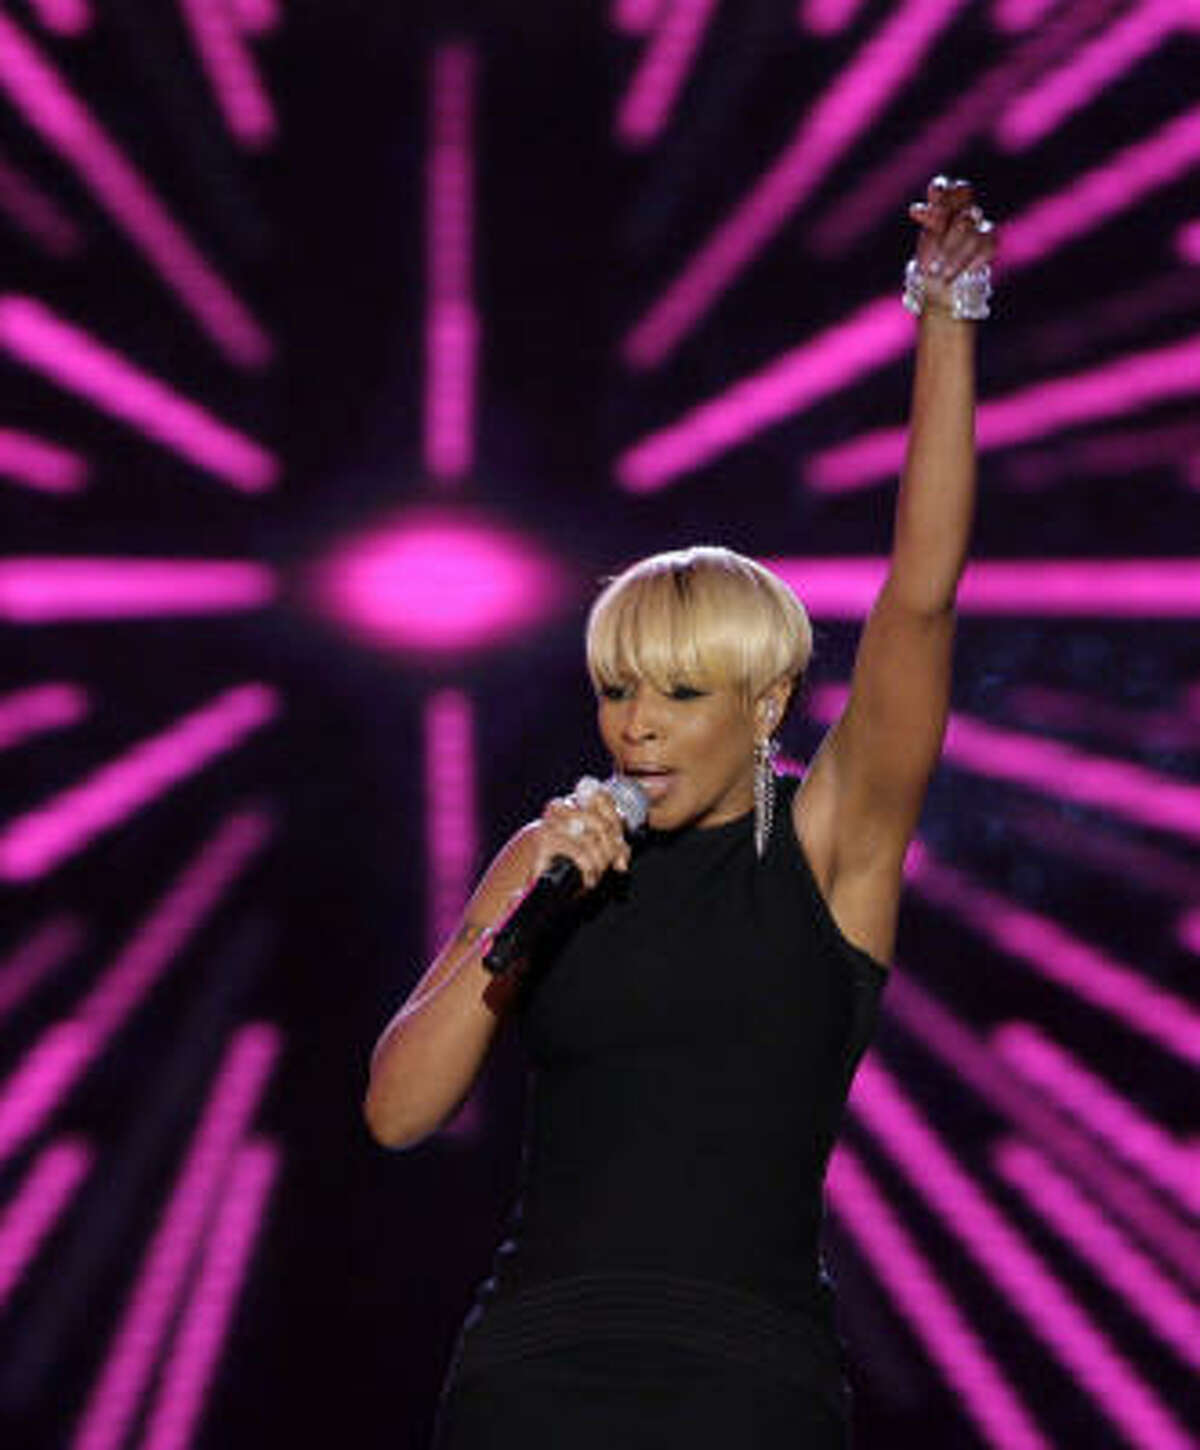 Mary J. Blige performs at the Neighborhood Inaugural Ball in Washington on Tuesday.